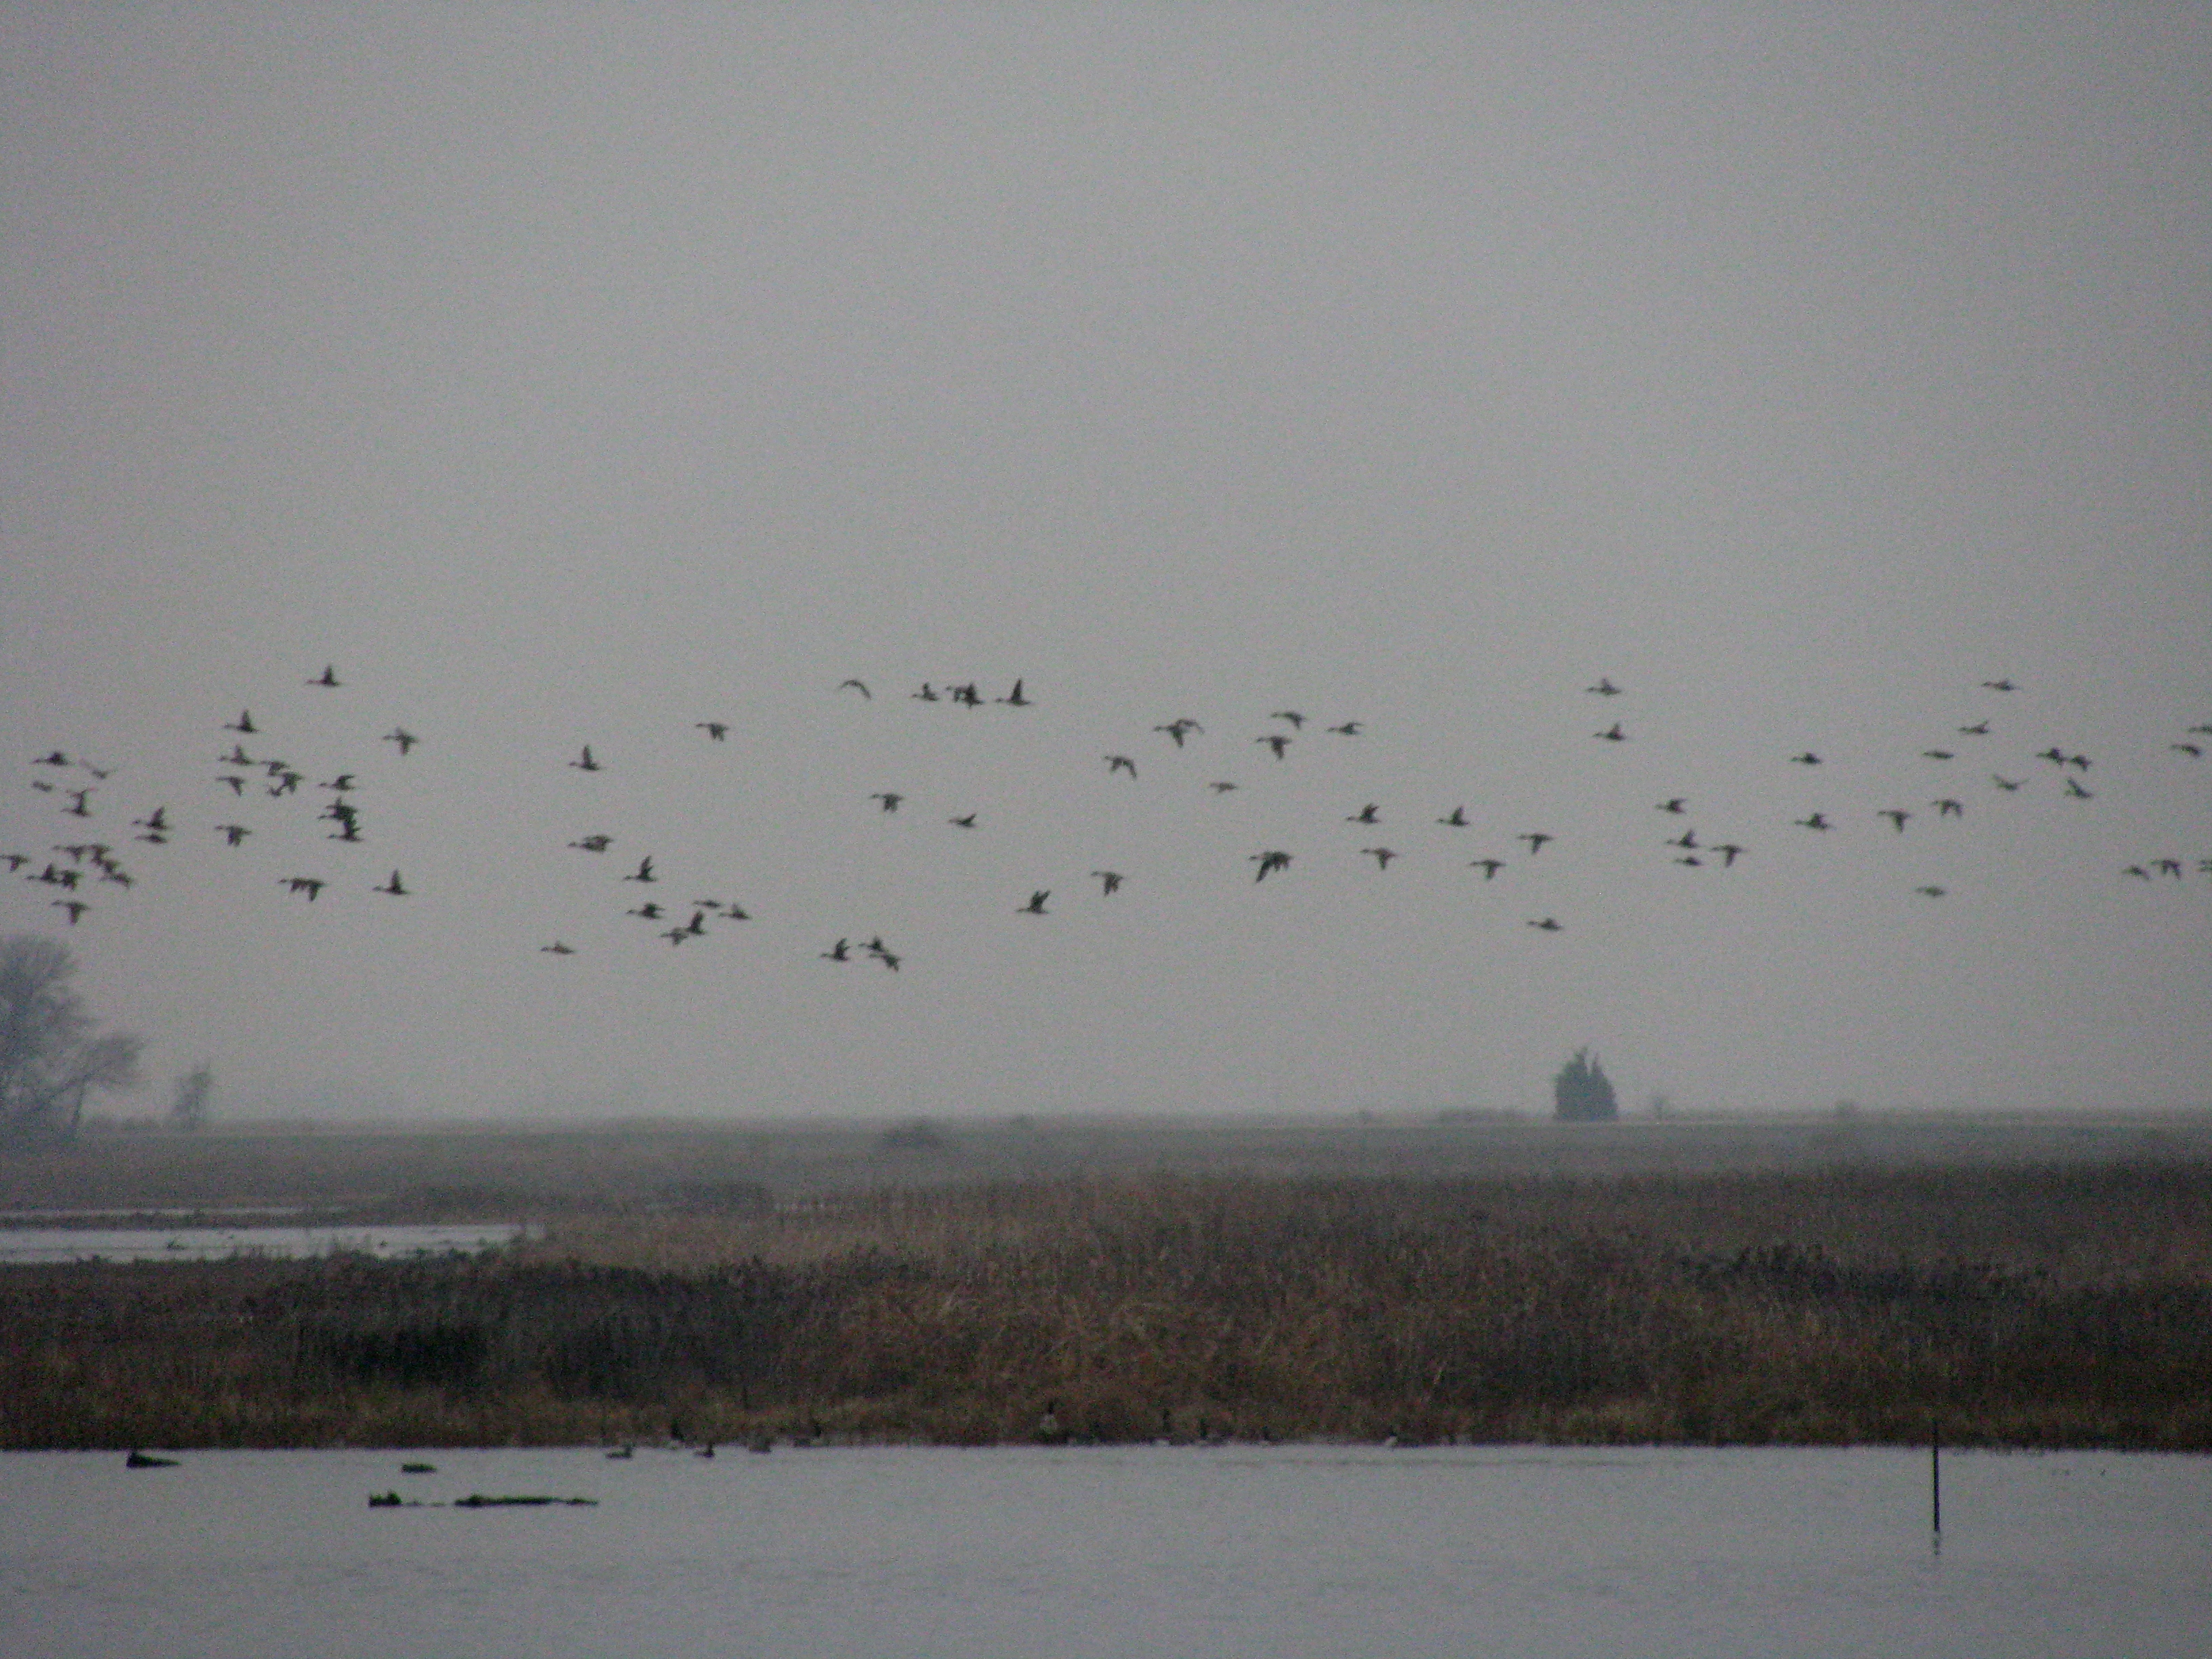 Flocks of ducks wing over the waters of Bear Swamp.